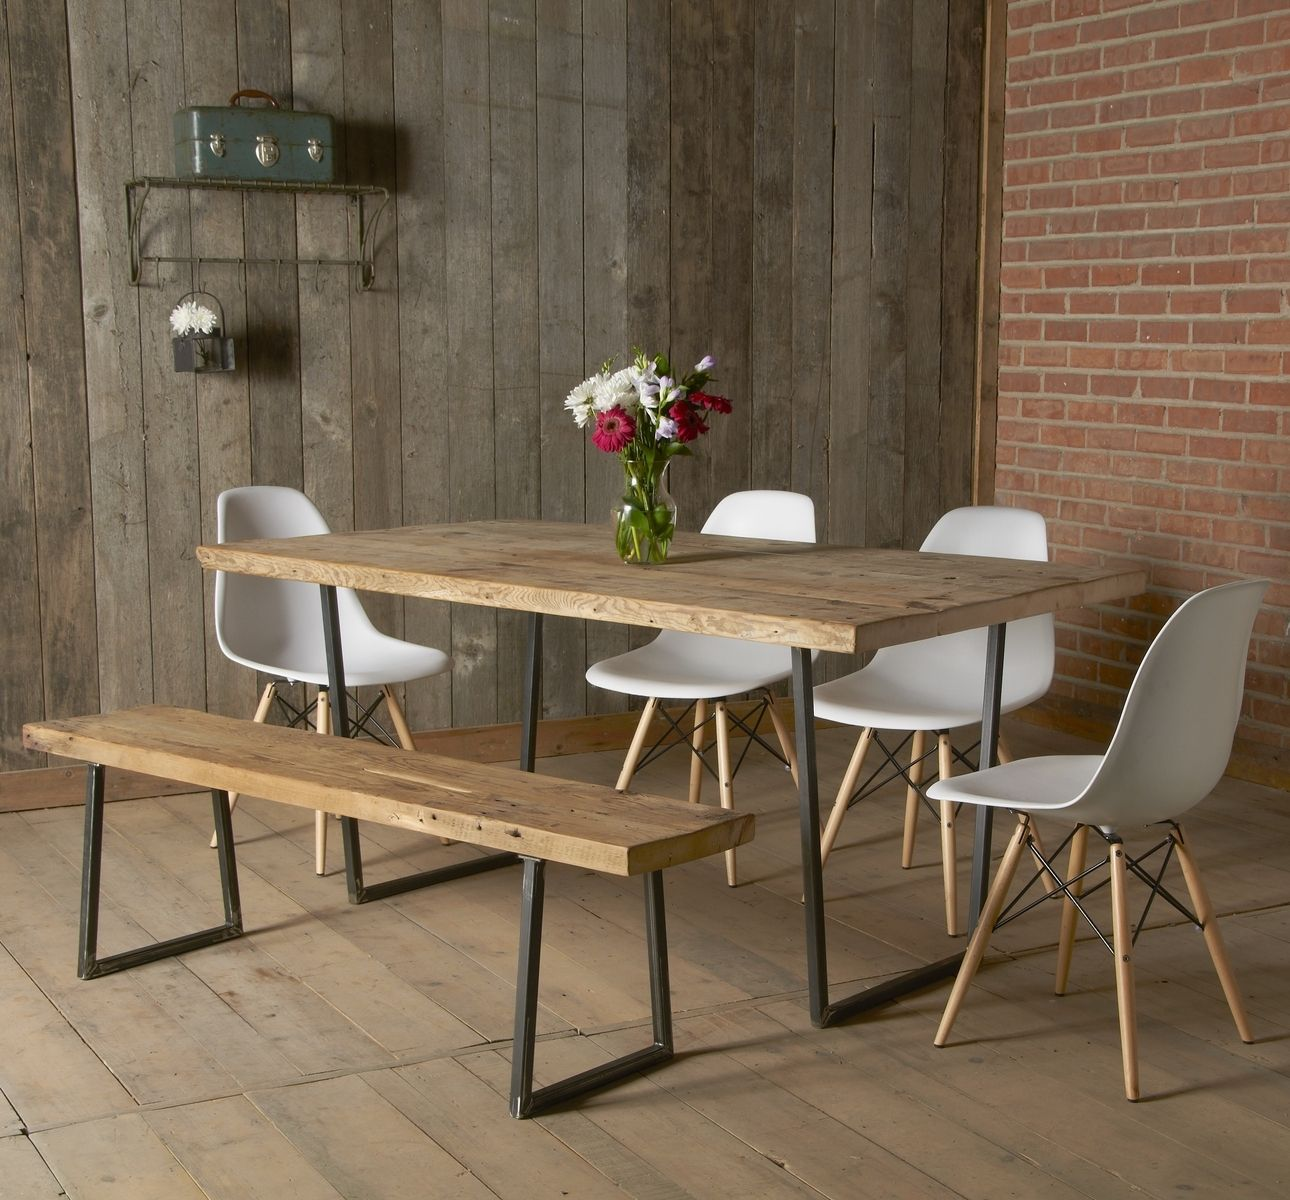 Buy A Custom Made Brooklyn Modern Rustic Reclaimed Wood Dining Table Made To Order From Urban